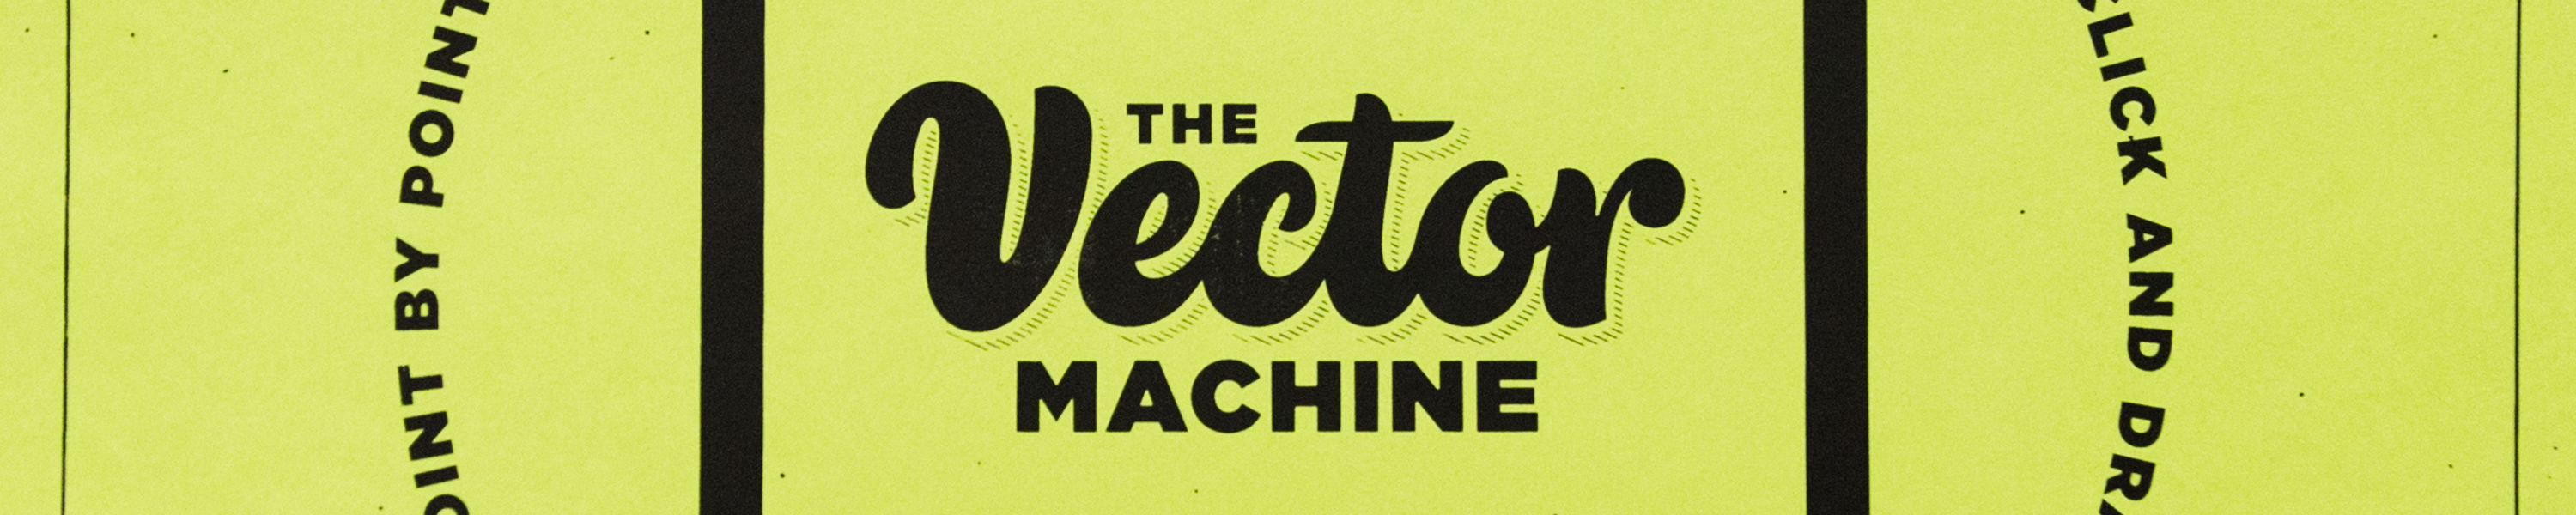 Intern Event: The Vector Macine with Bob Ewing